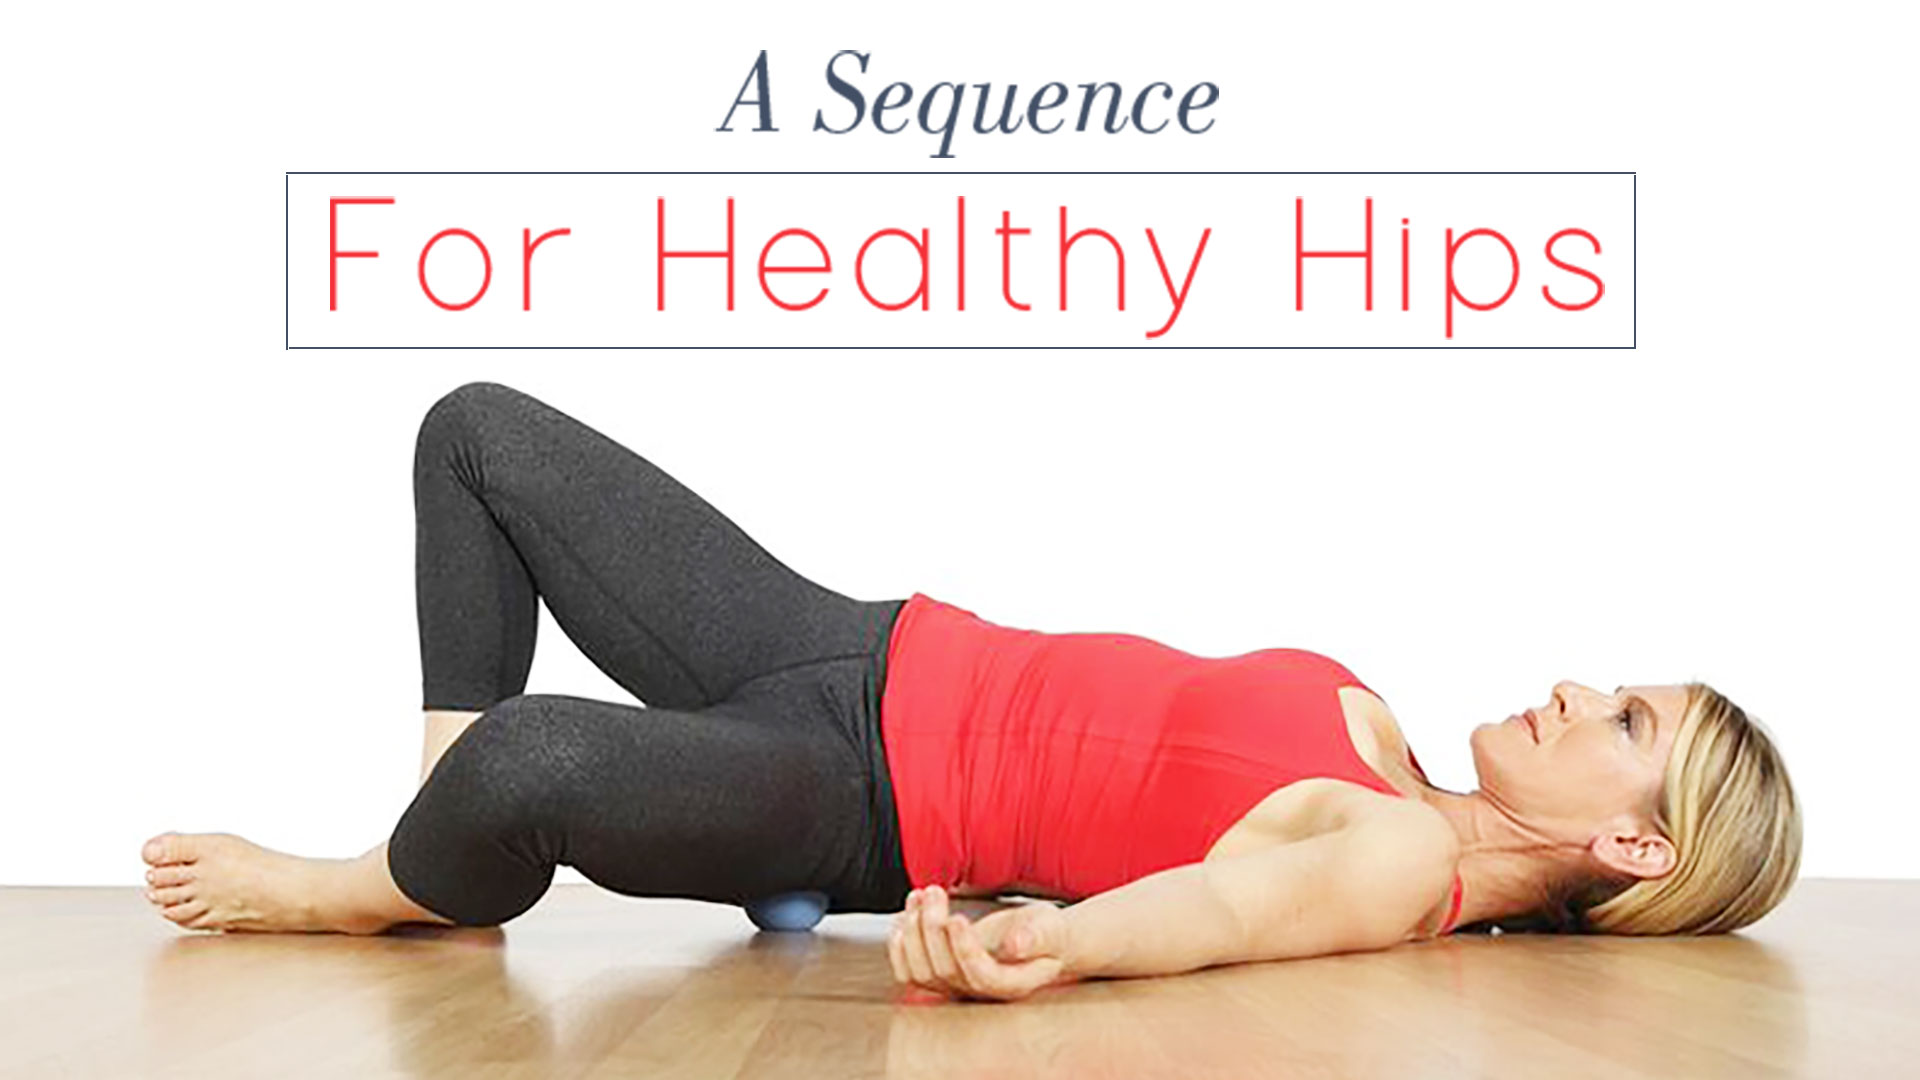 A Sequence for Healthy Hips | Yoga International